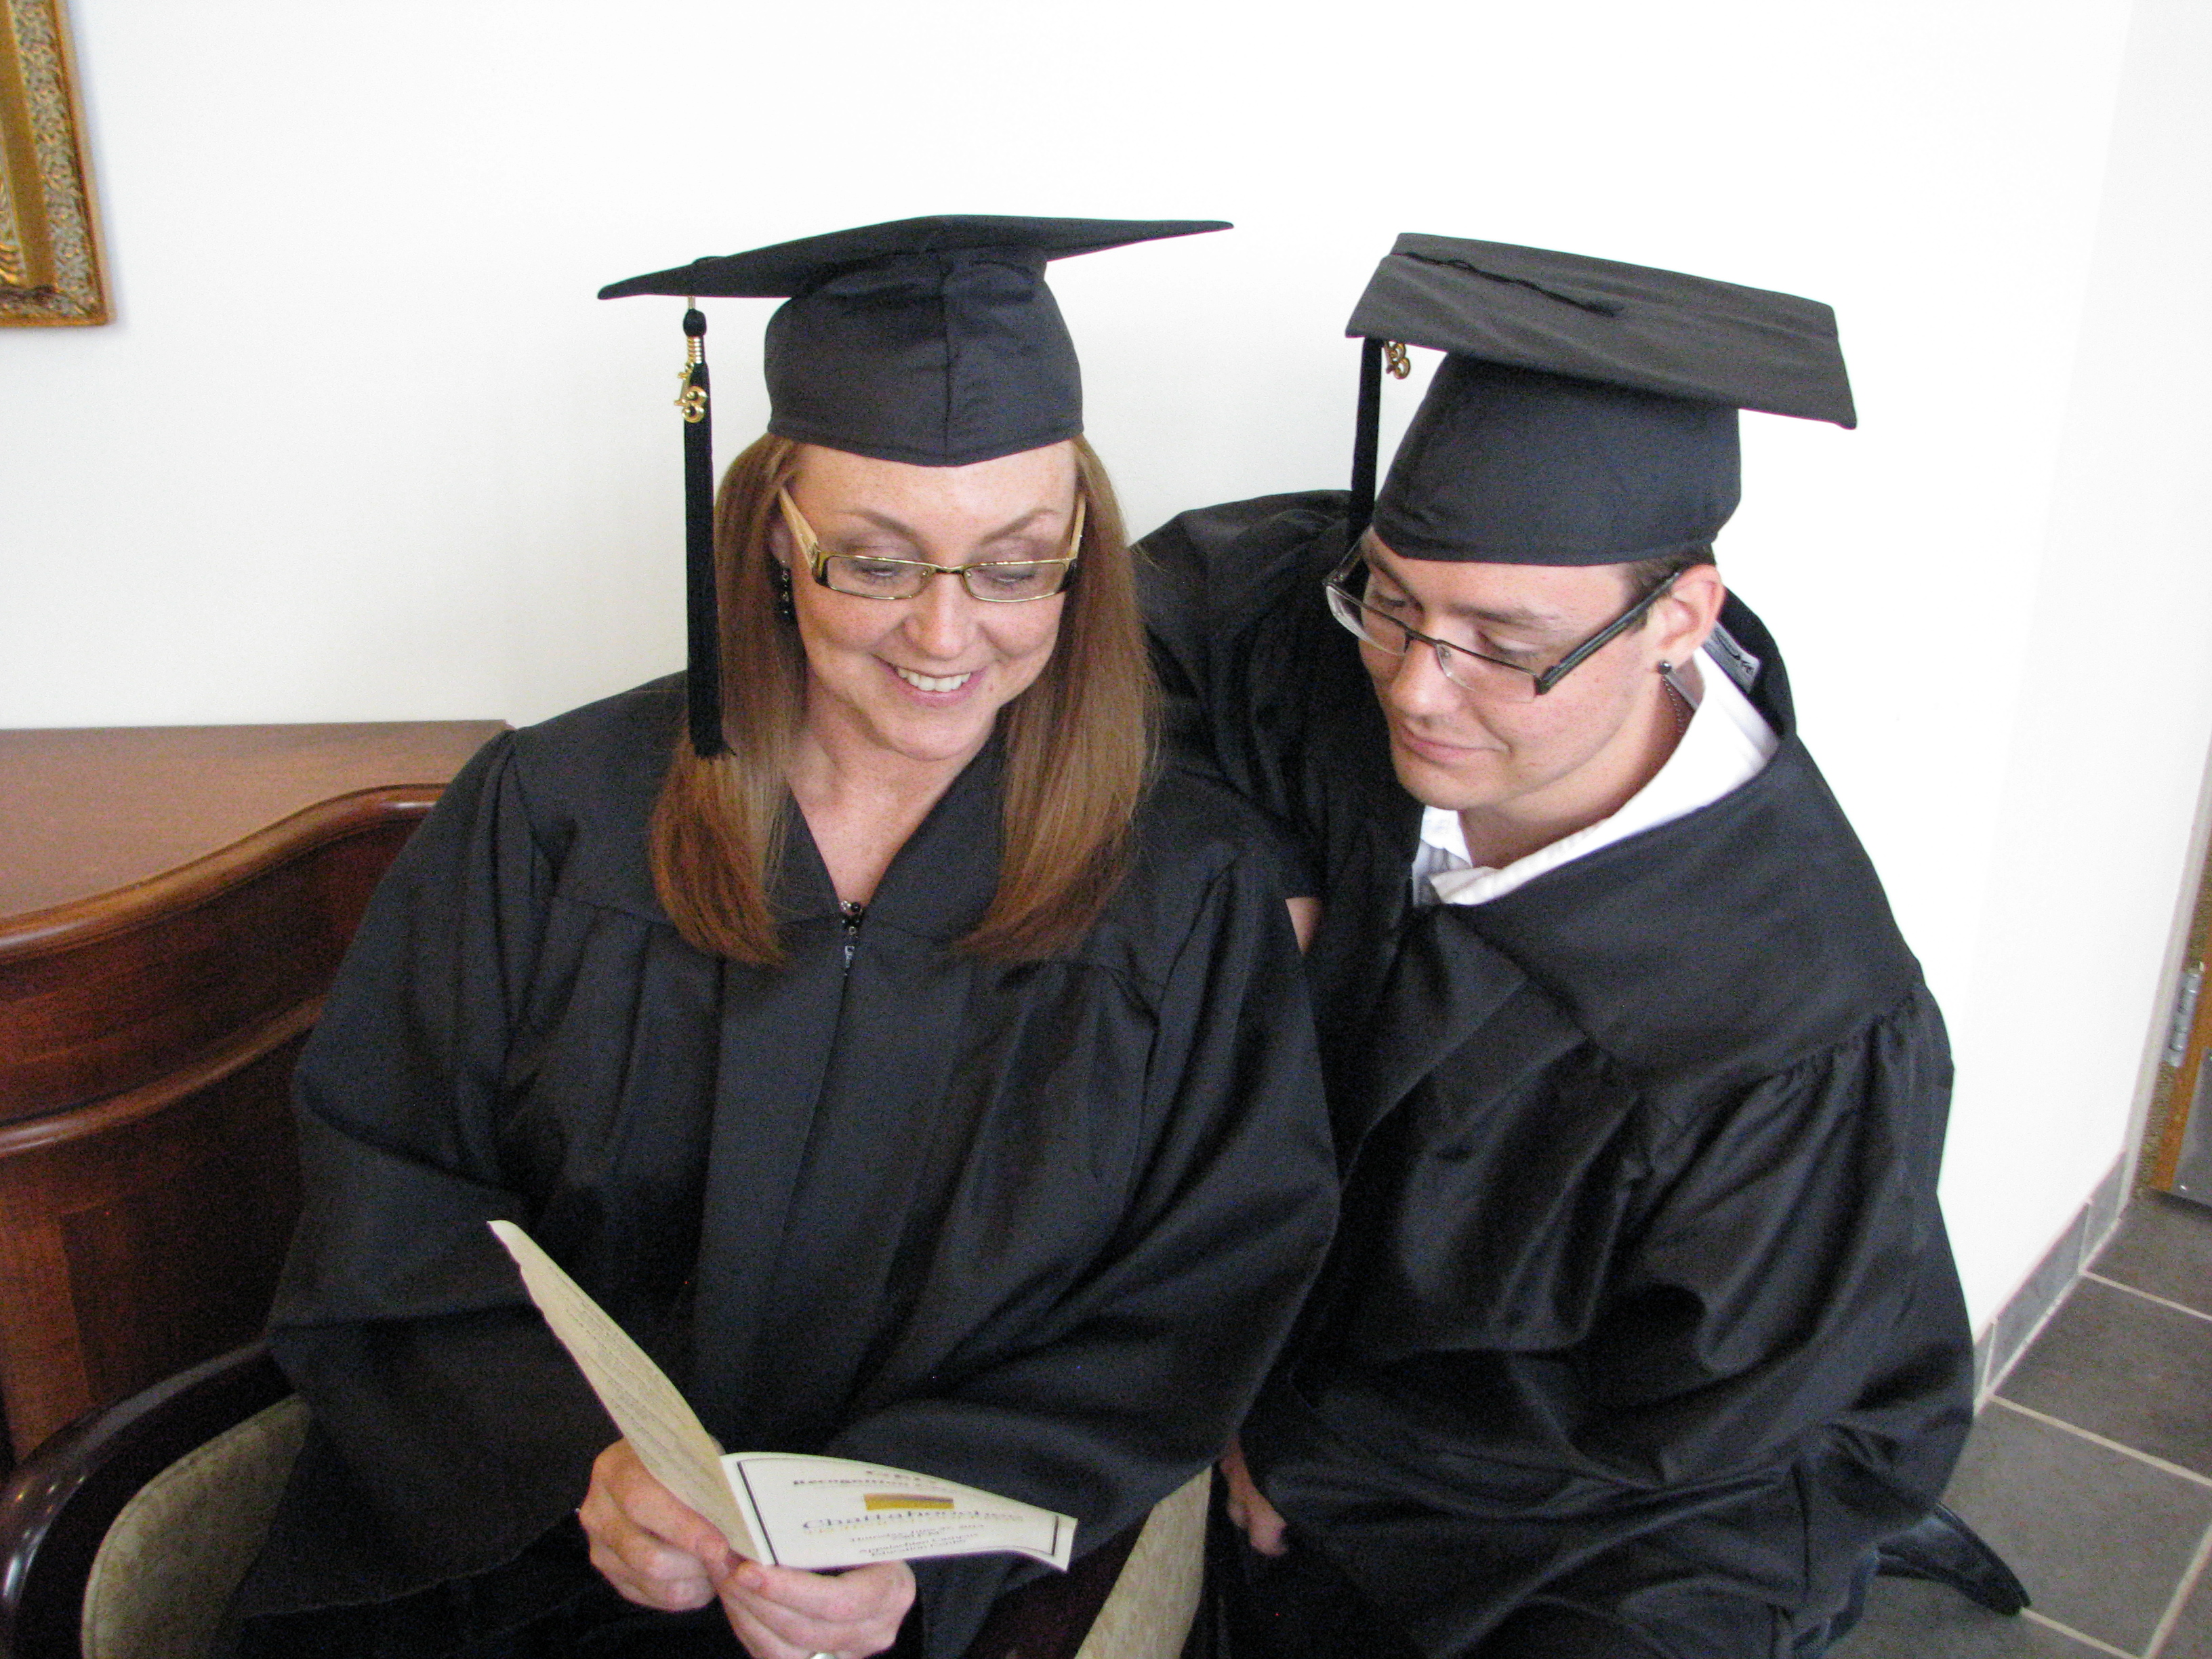 Male and female student in cap and gown